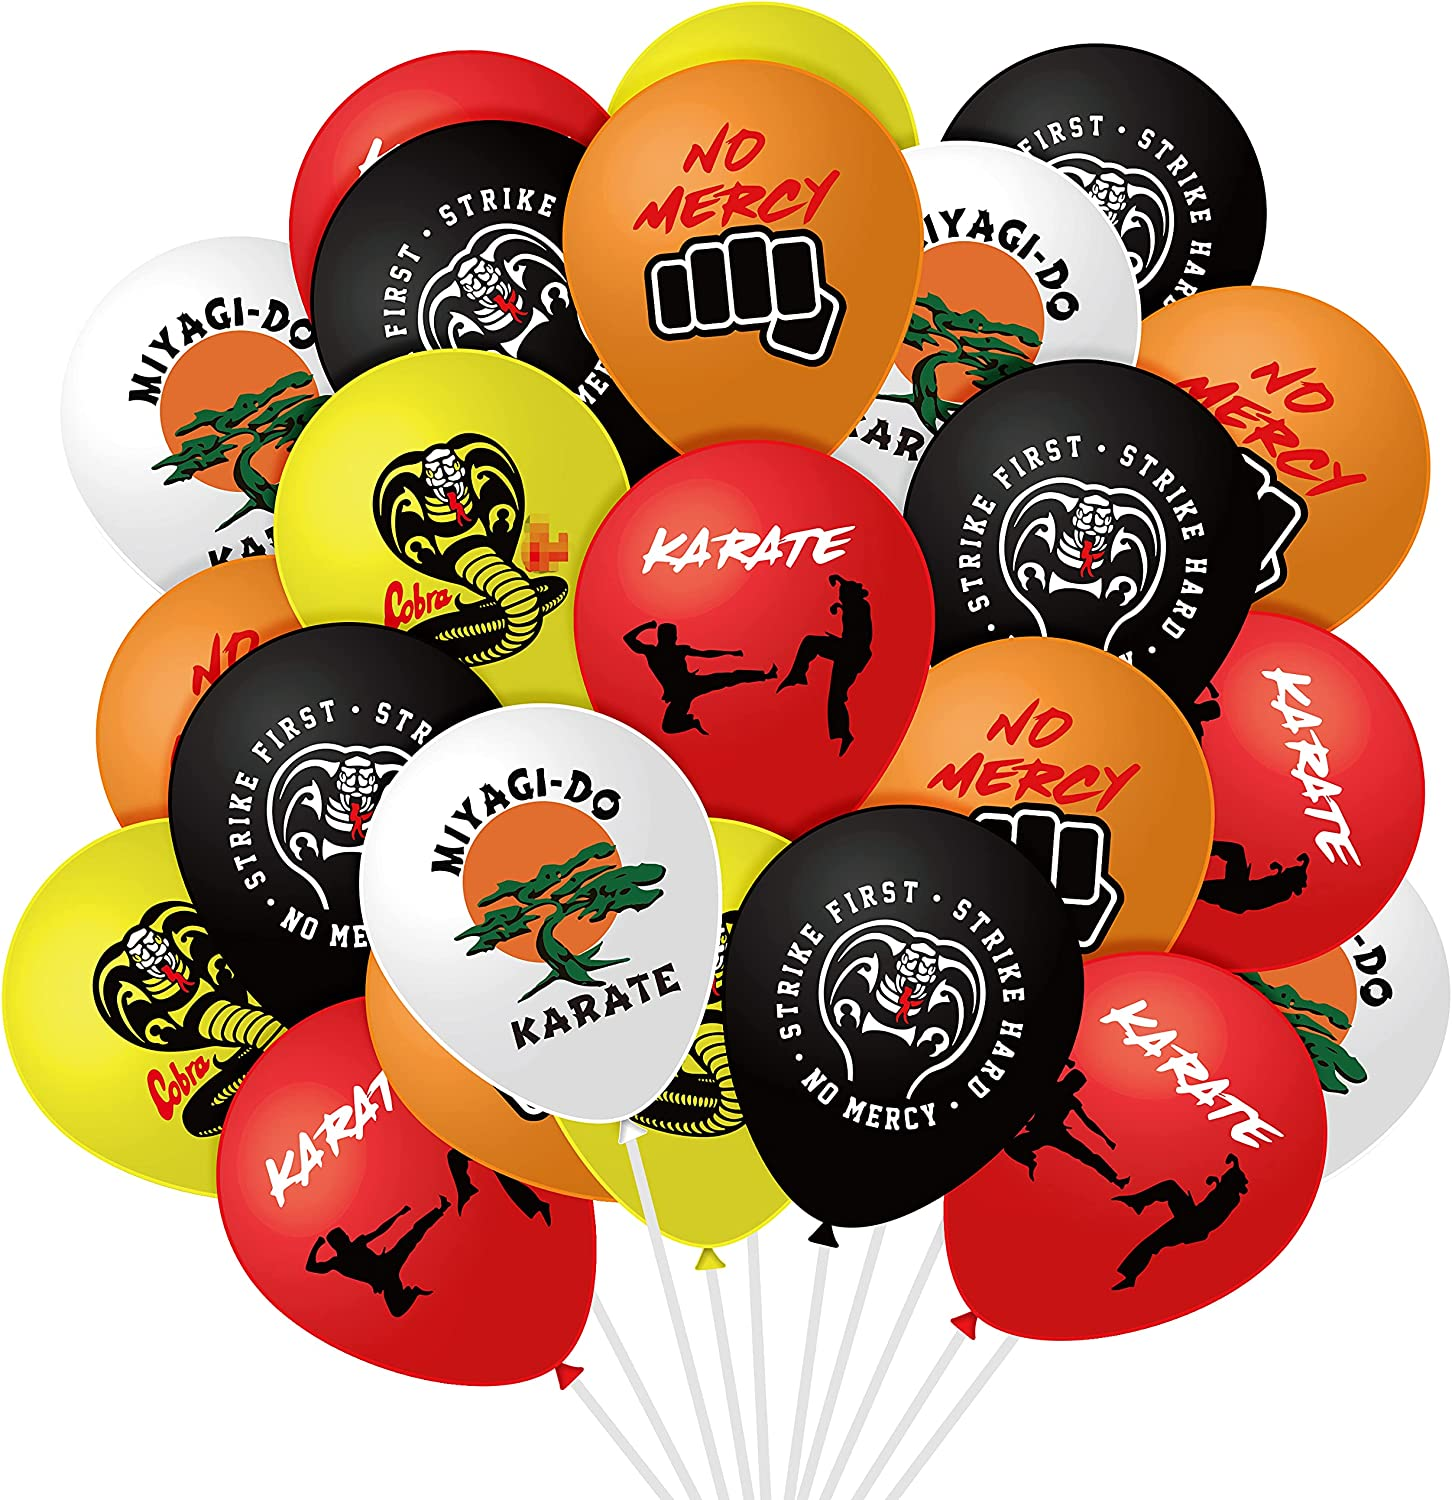 Fiupan 50Pcs Cobra Party Balloons Recommendation Strike No Hard Me Jacksonville Mall First